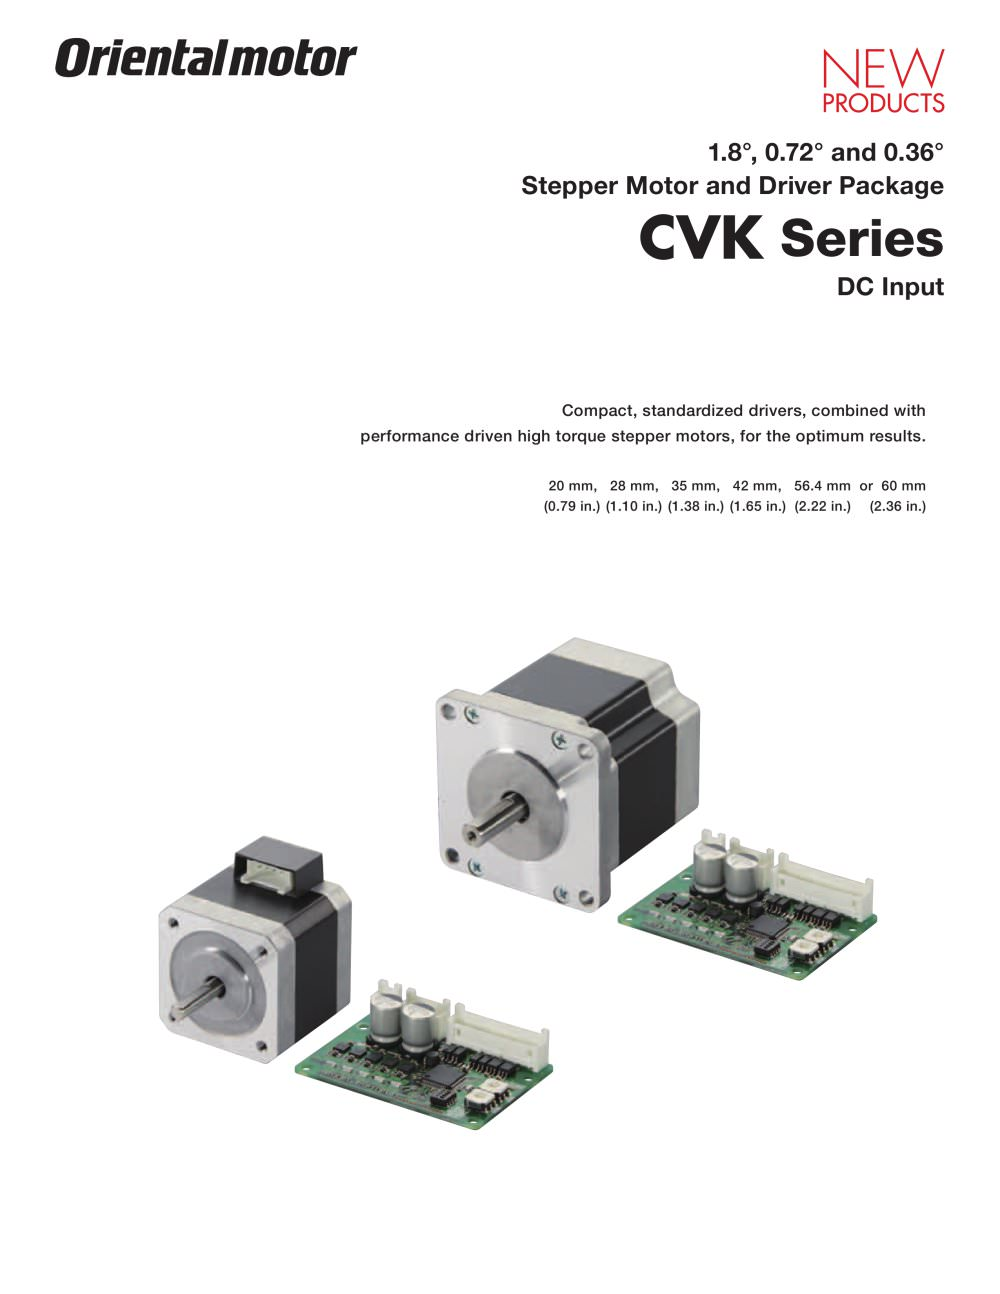 1.8°, 0.72° / 0.36° Stepper Motor and Driver CVK Series* - 1 / 24 Pages